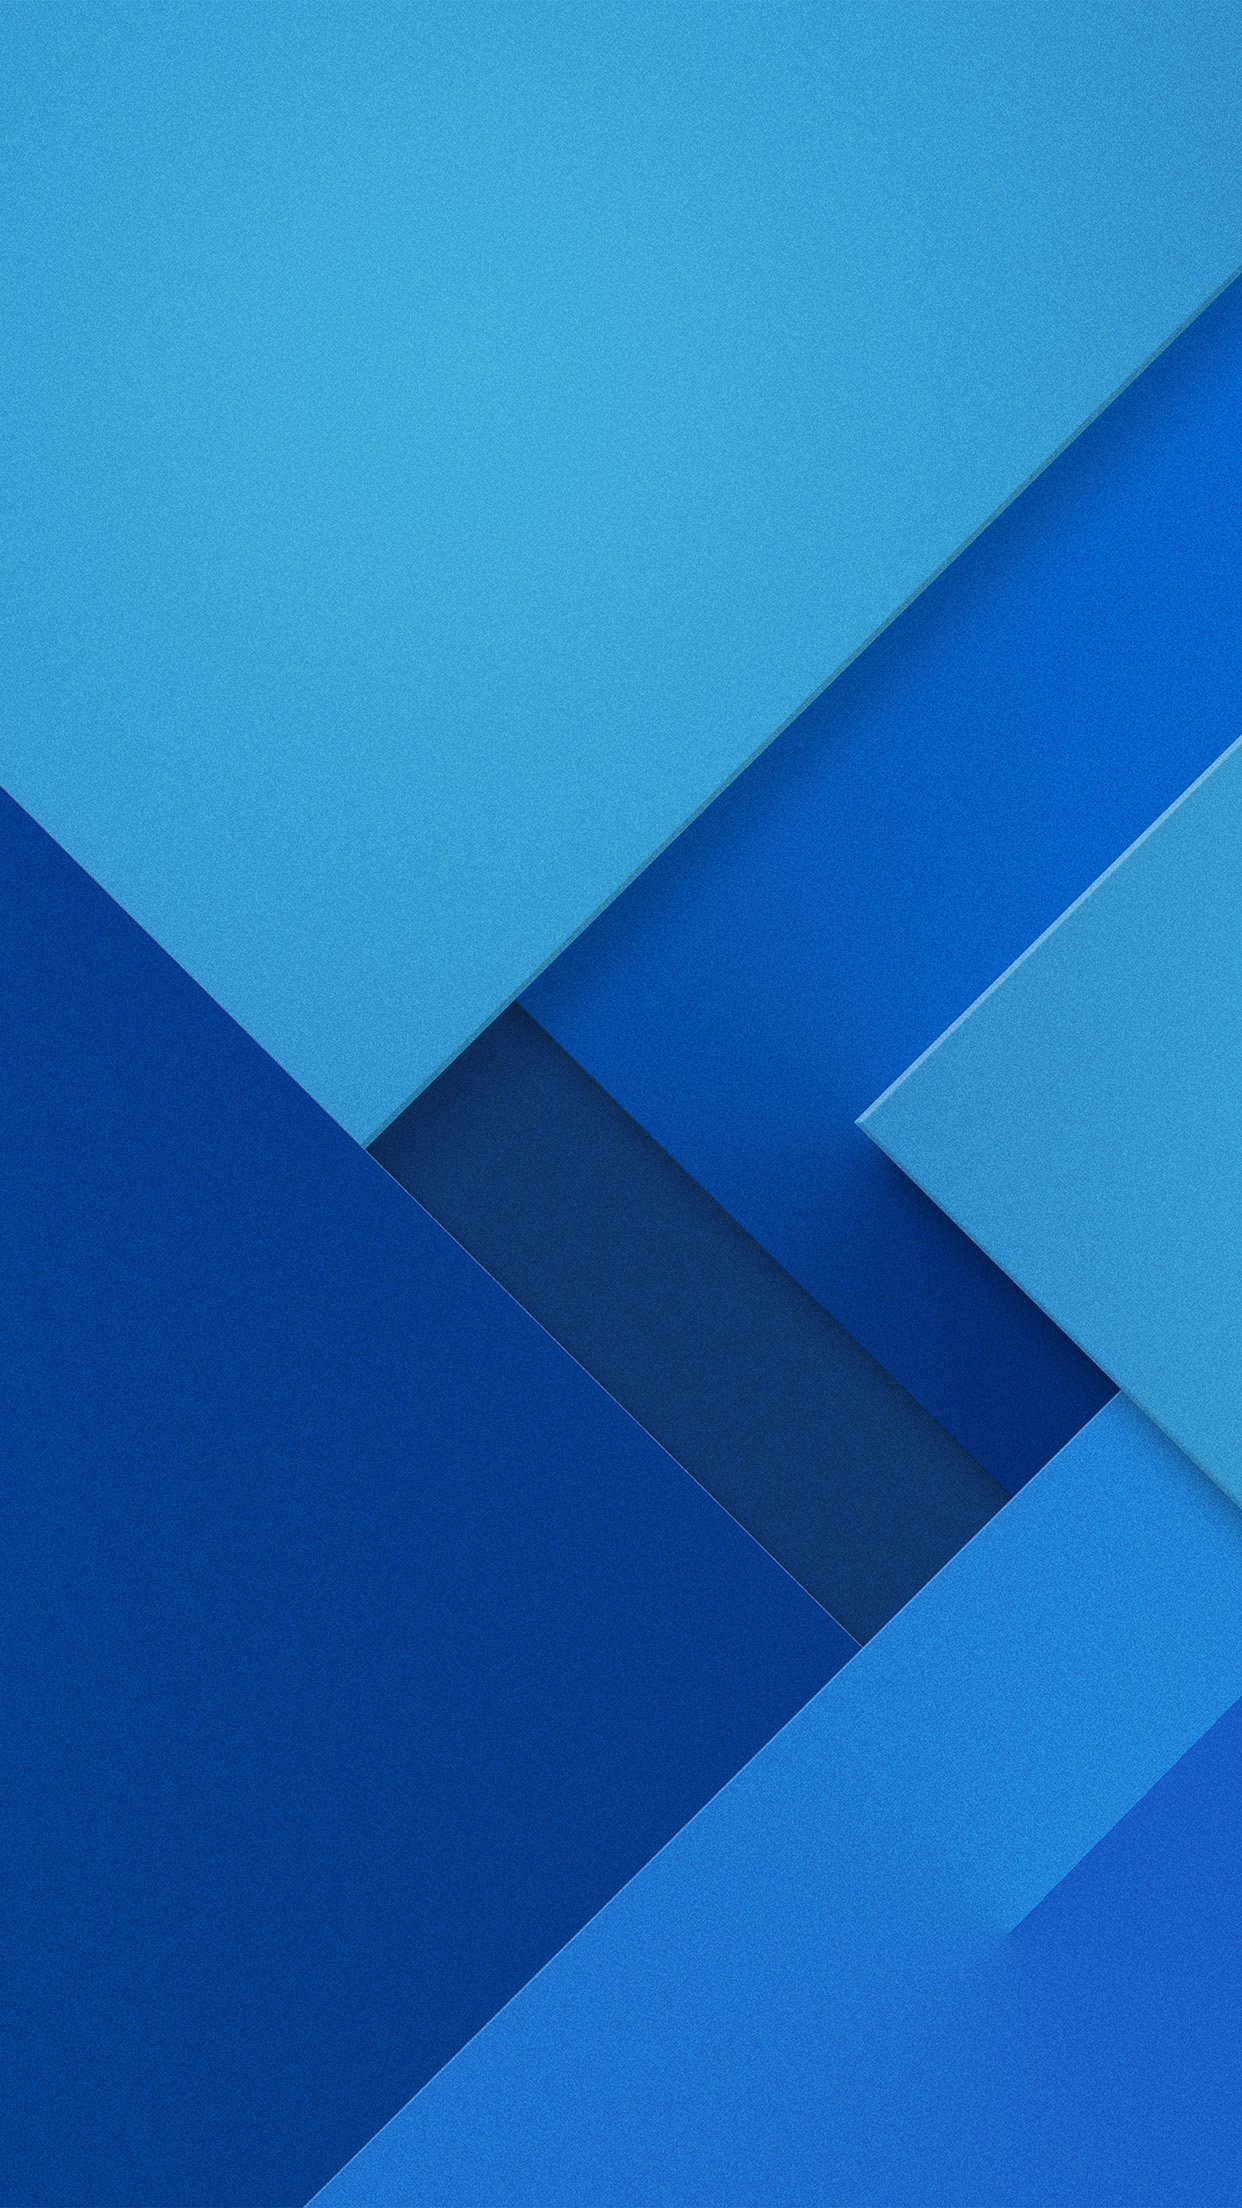 Samsung S8 3d Wallpaper Download Samsung Galaxy 7 Edge Blue Abstract Pattern Android